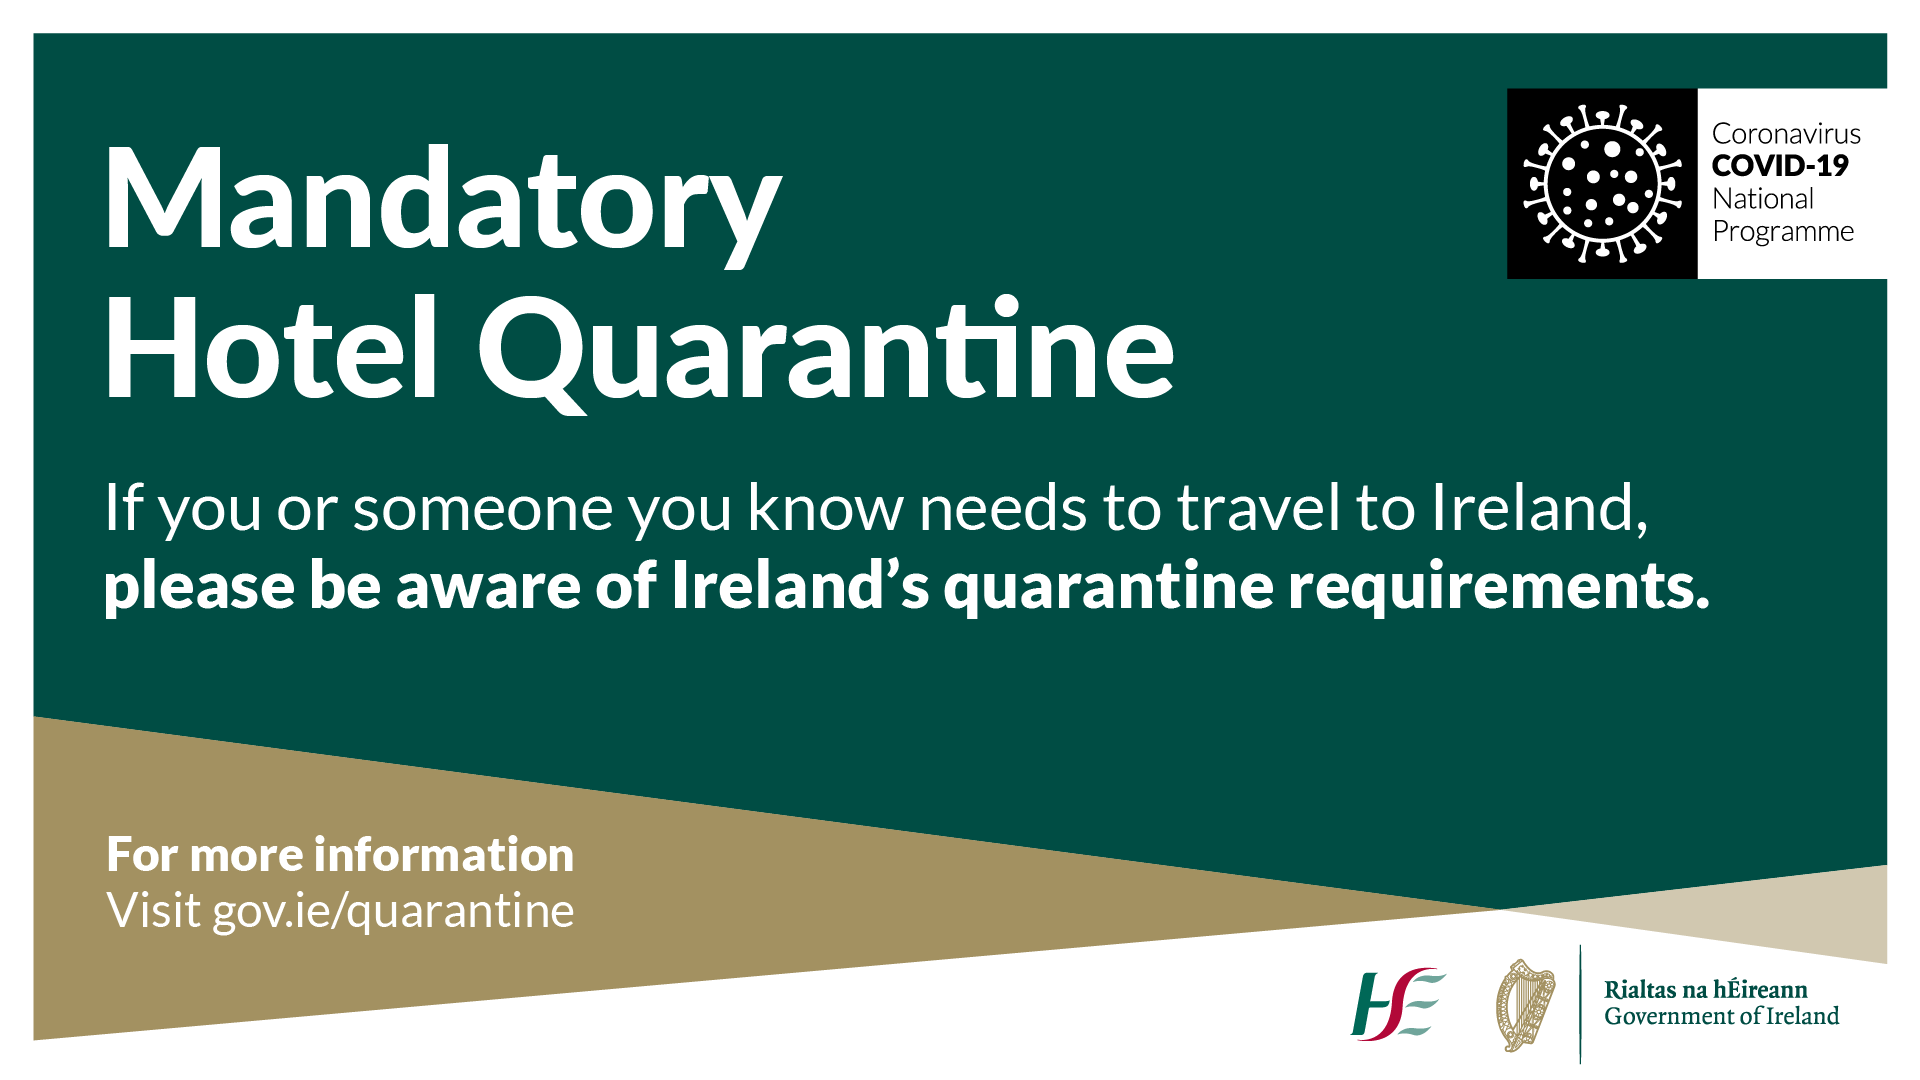 Mandatory Hotel Quarantine (MHQ) for travellers from high-risk countries